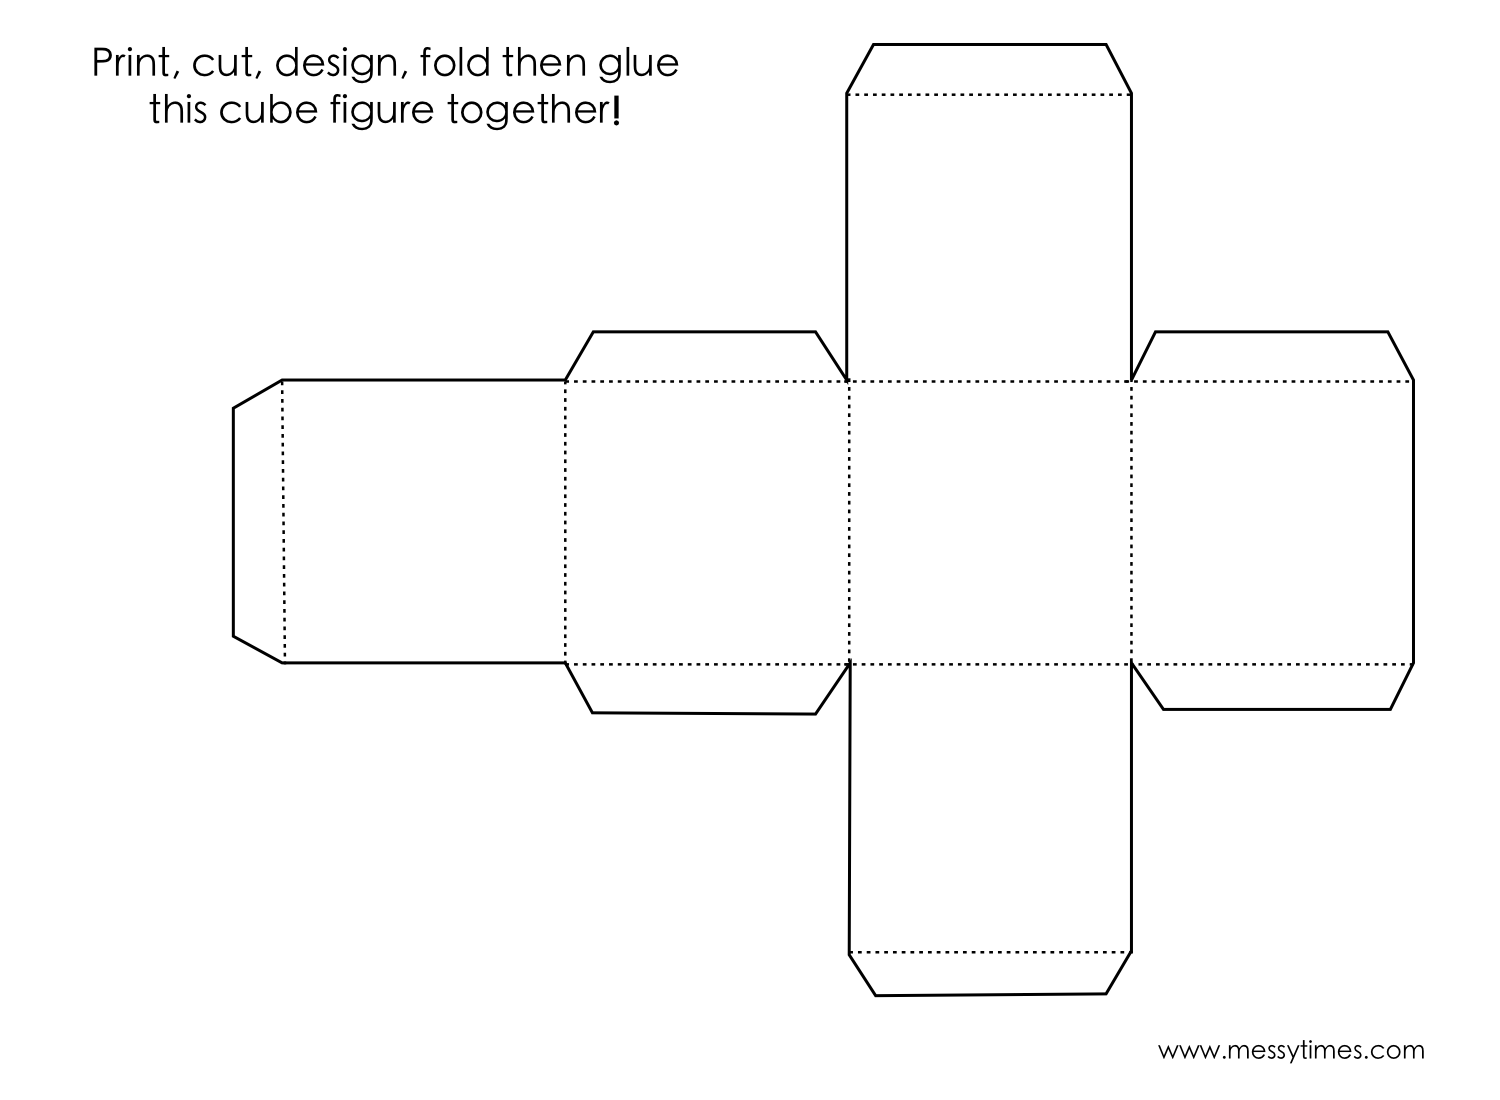 A 3D cube object to cut, design, fold and glue together ... - photo#11